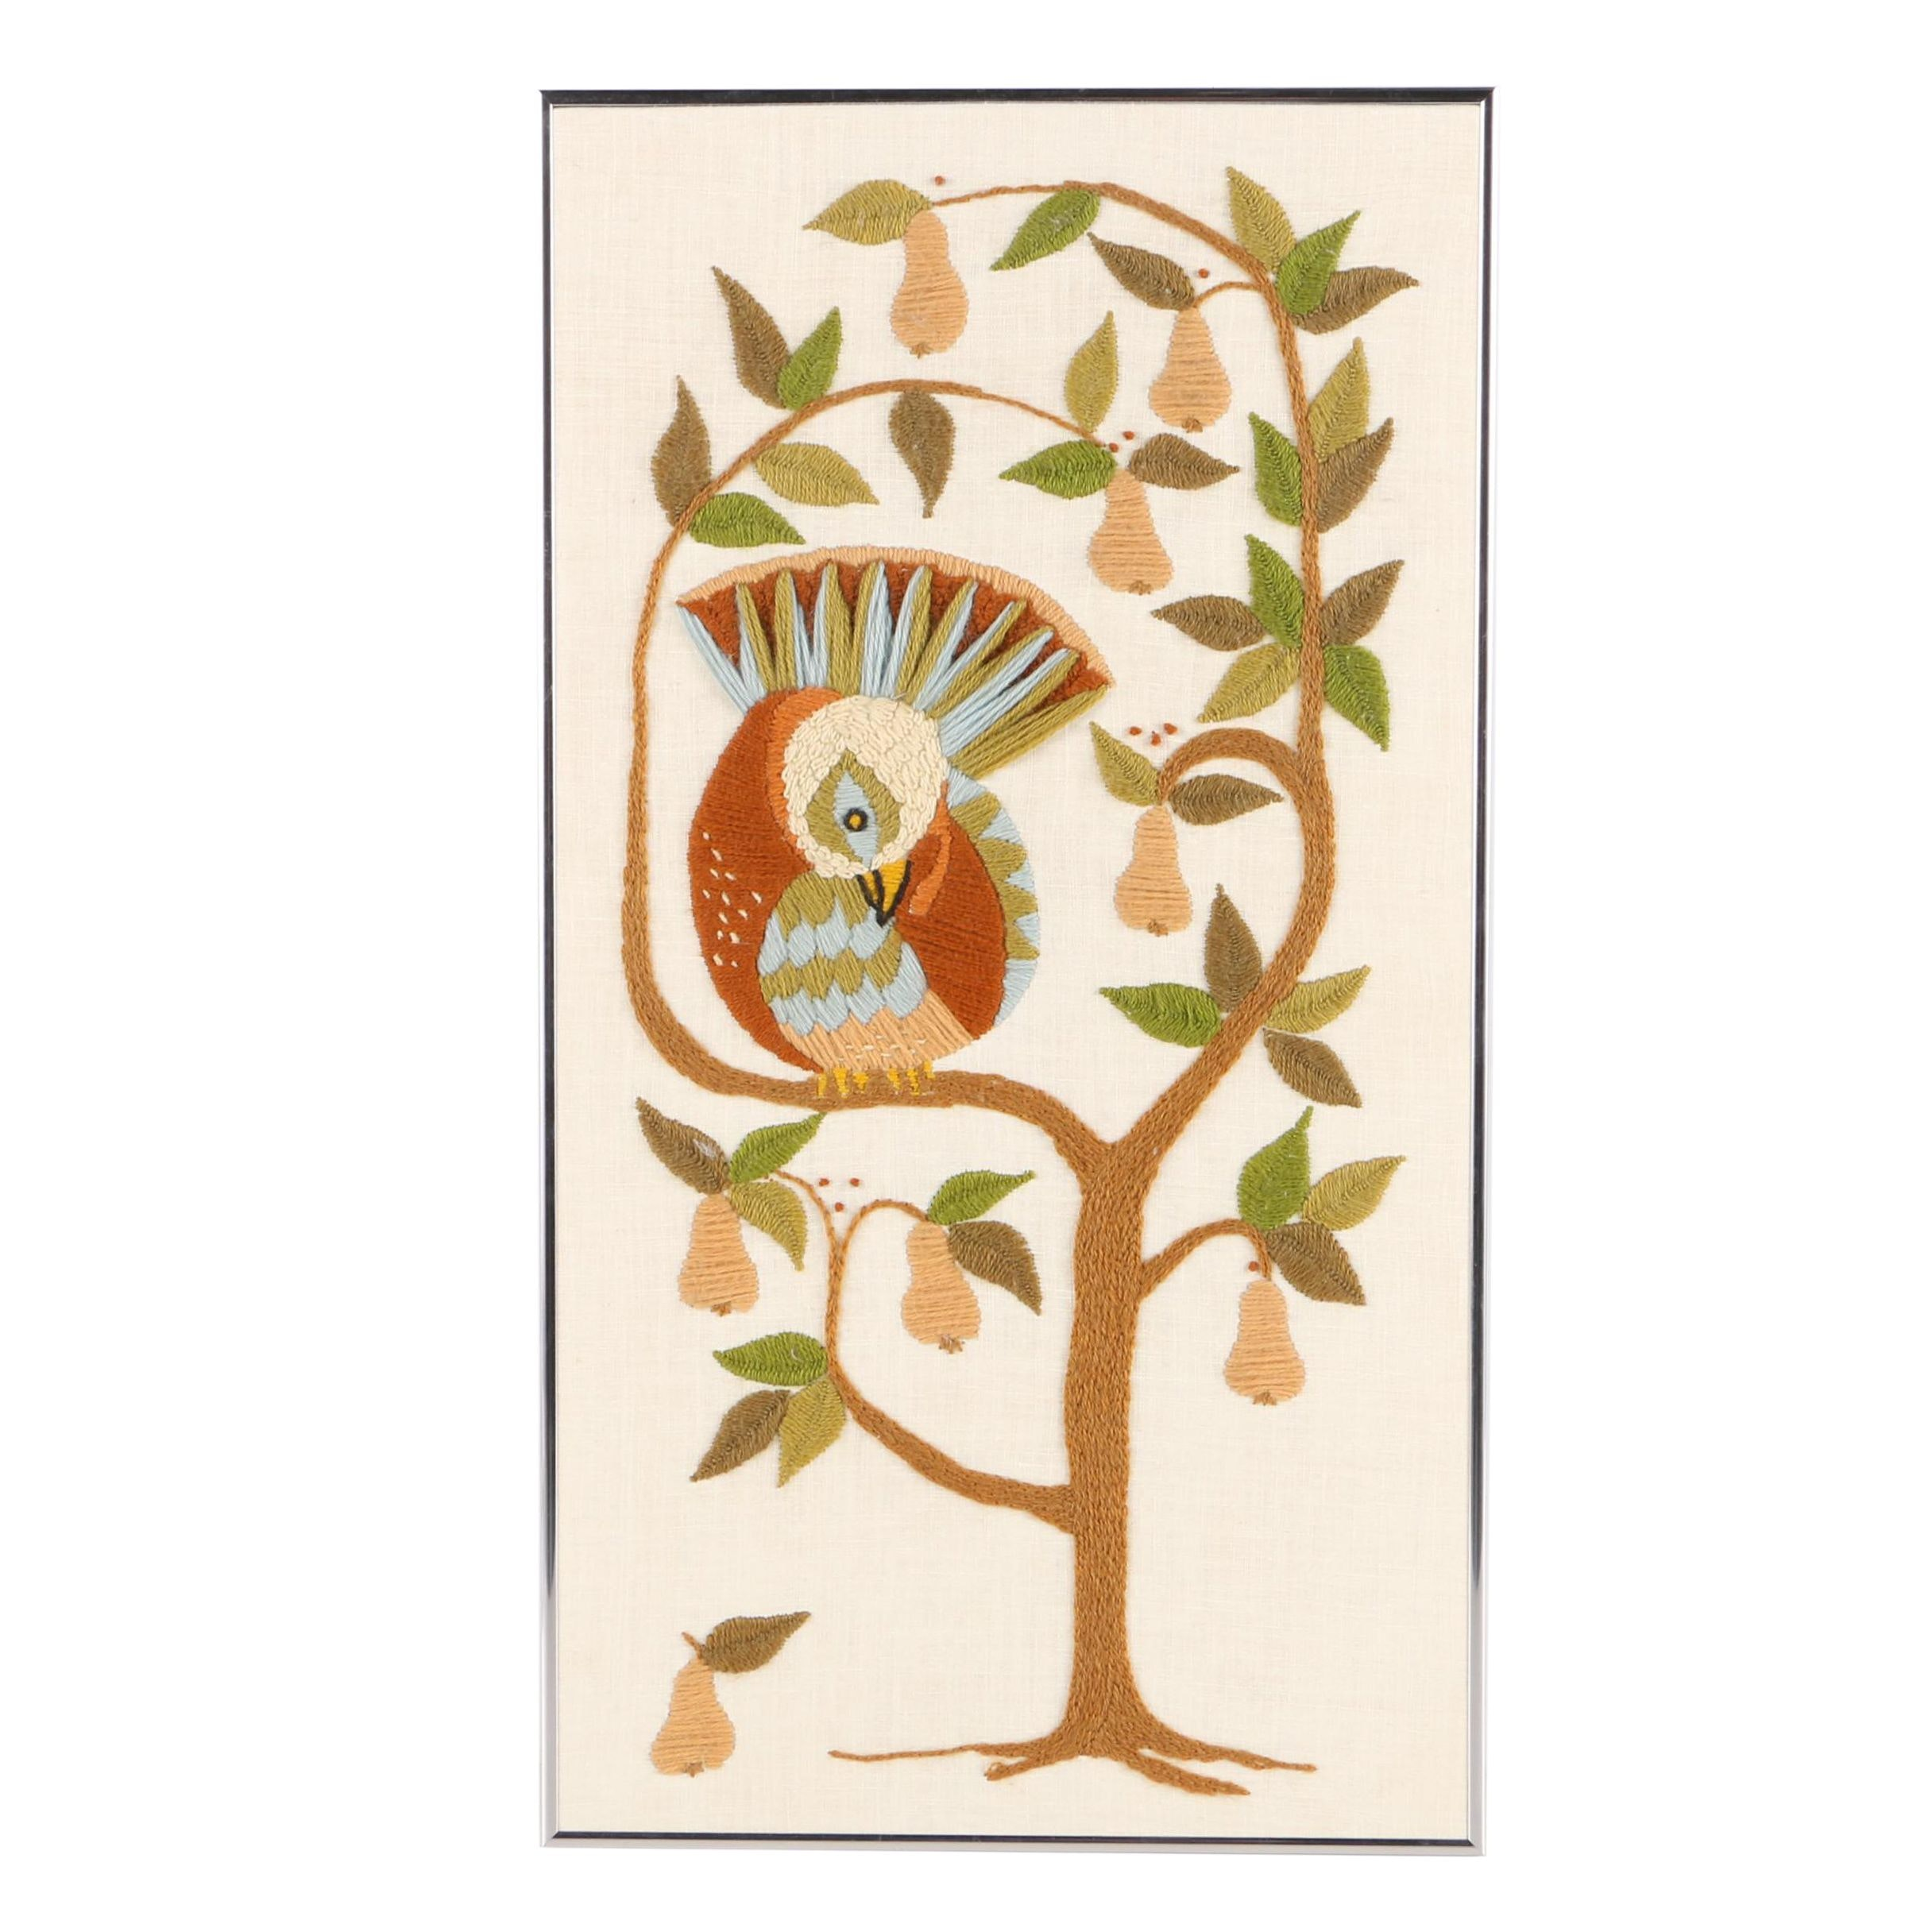 Helen Wagner Crewel Embroidery of a Partridge in a Pear Tree